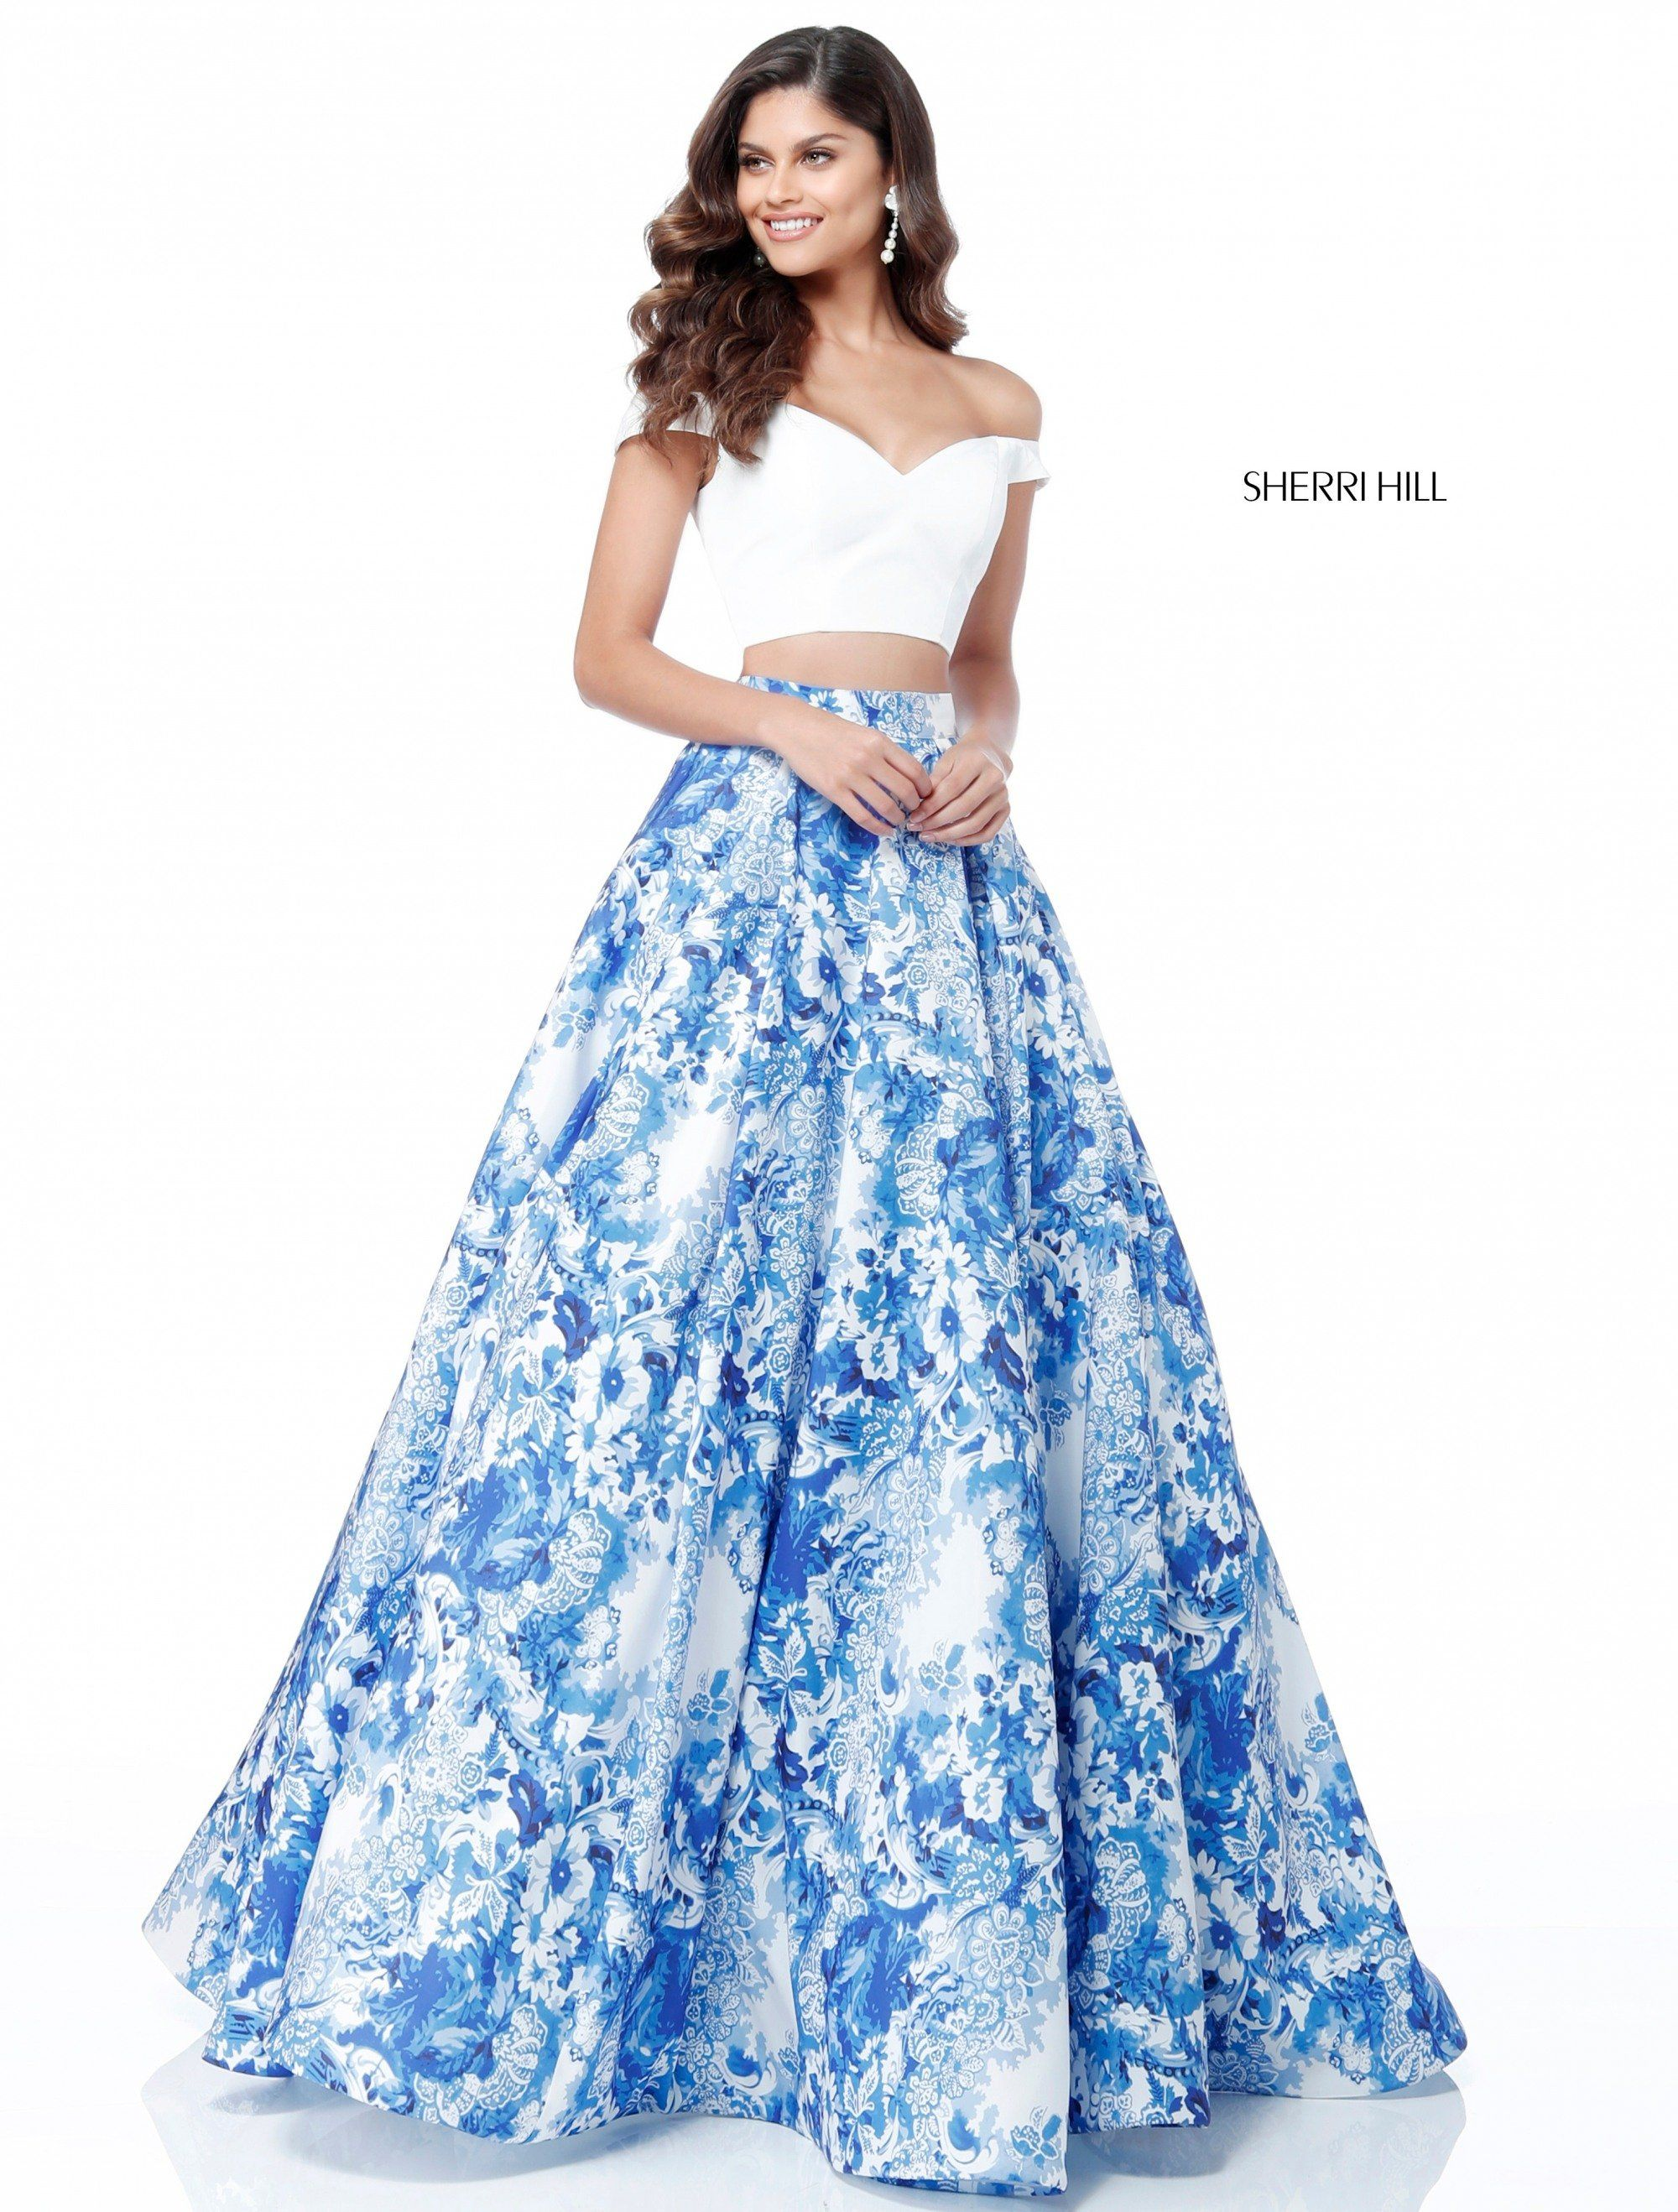 Sherri Hill 51680 | Prom, Clothing and Drop